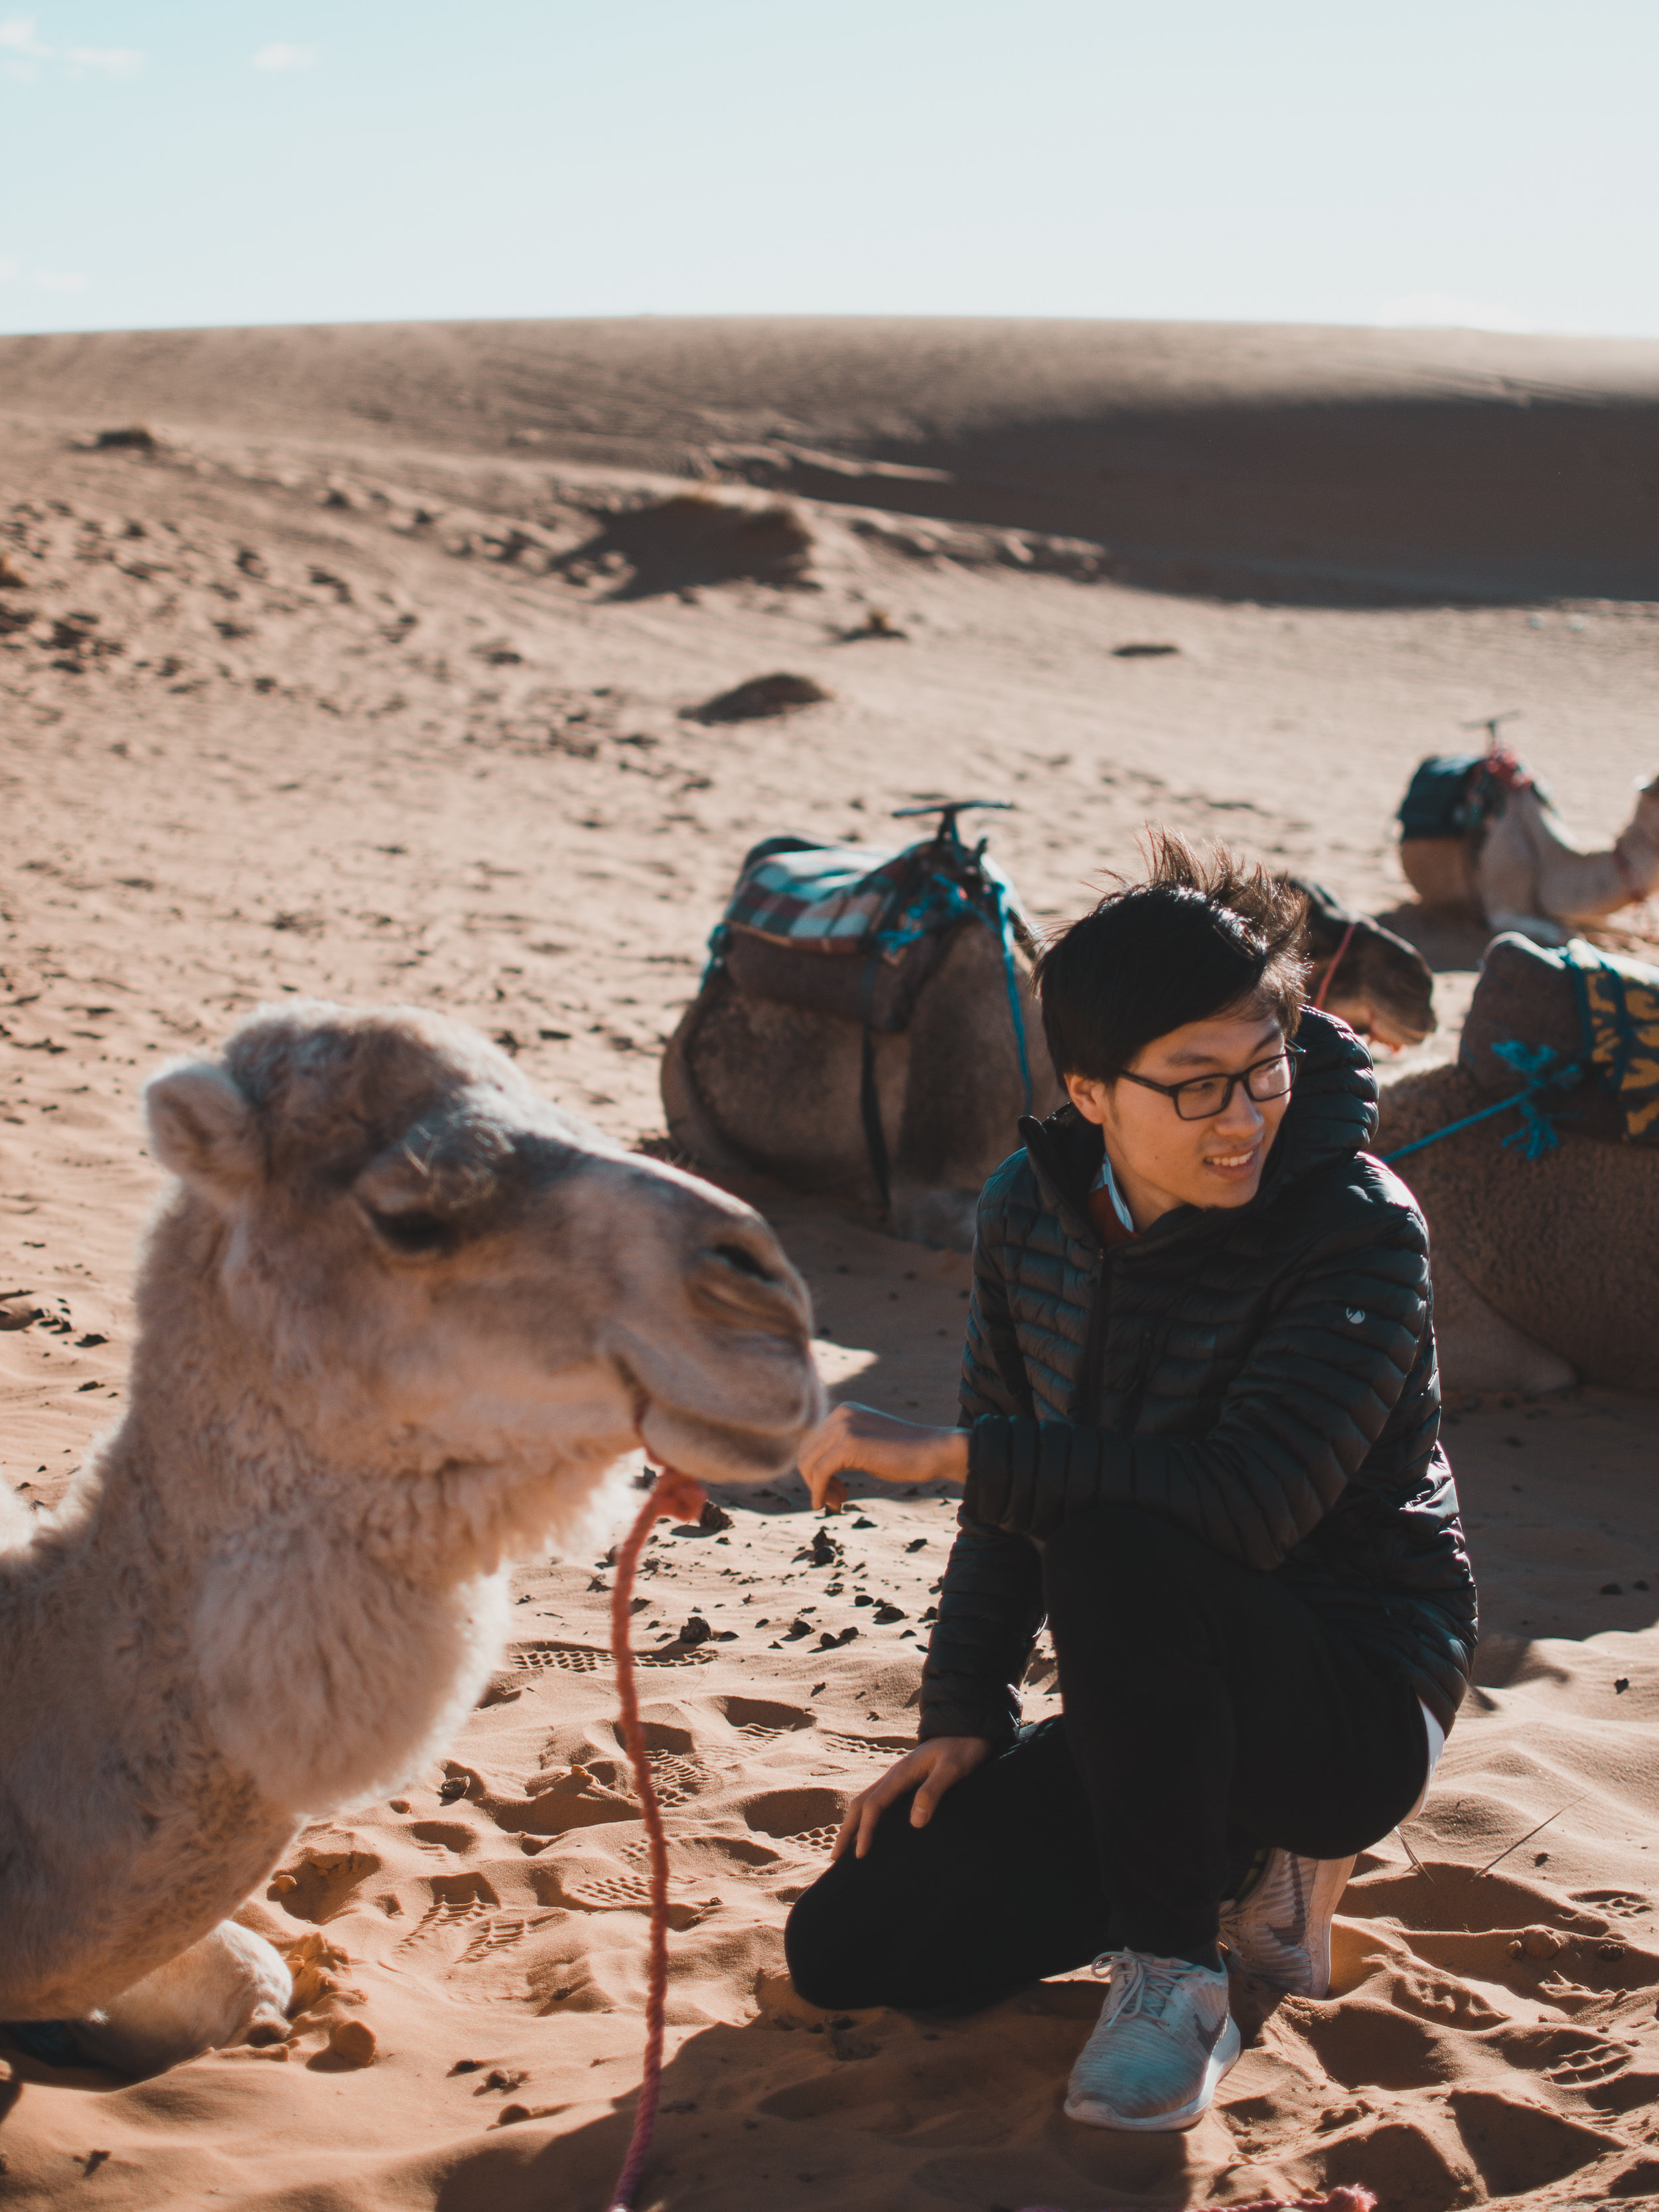 Befriending camels on our Sahara Desert tour in Morocco